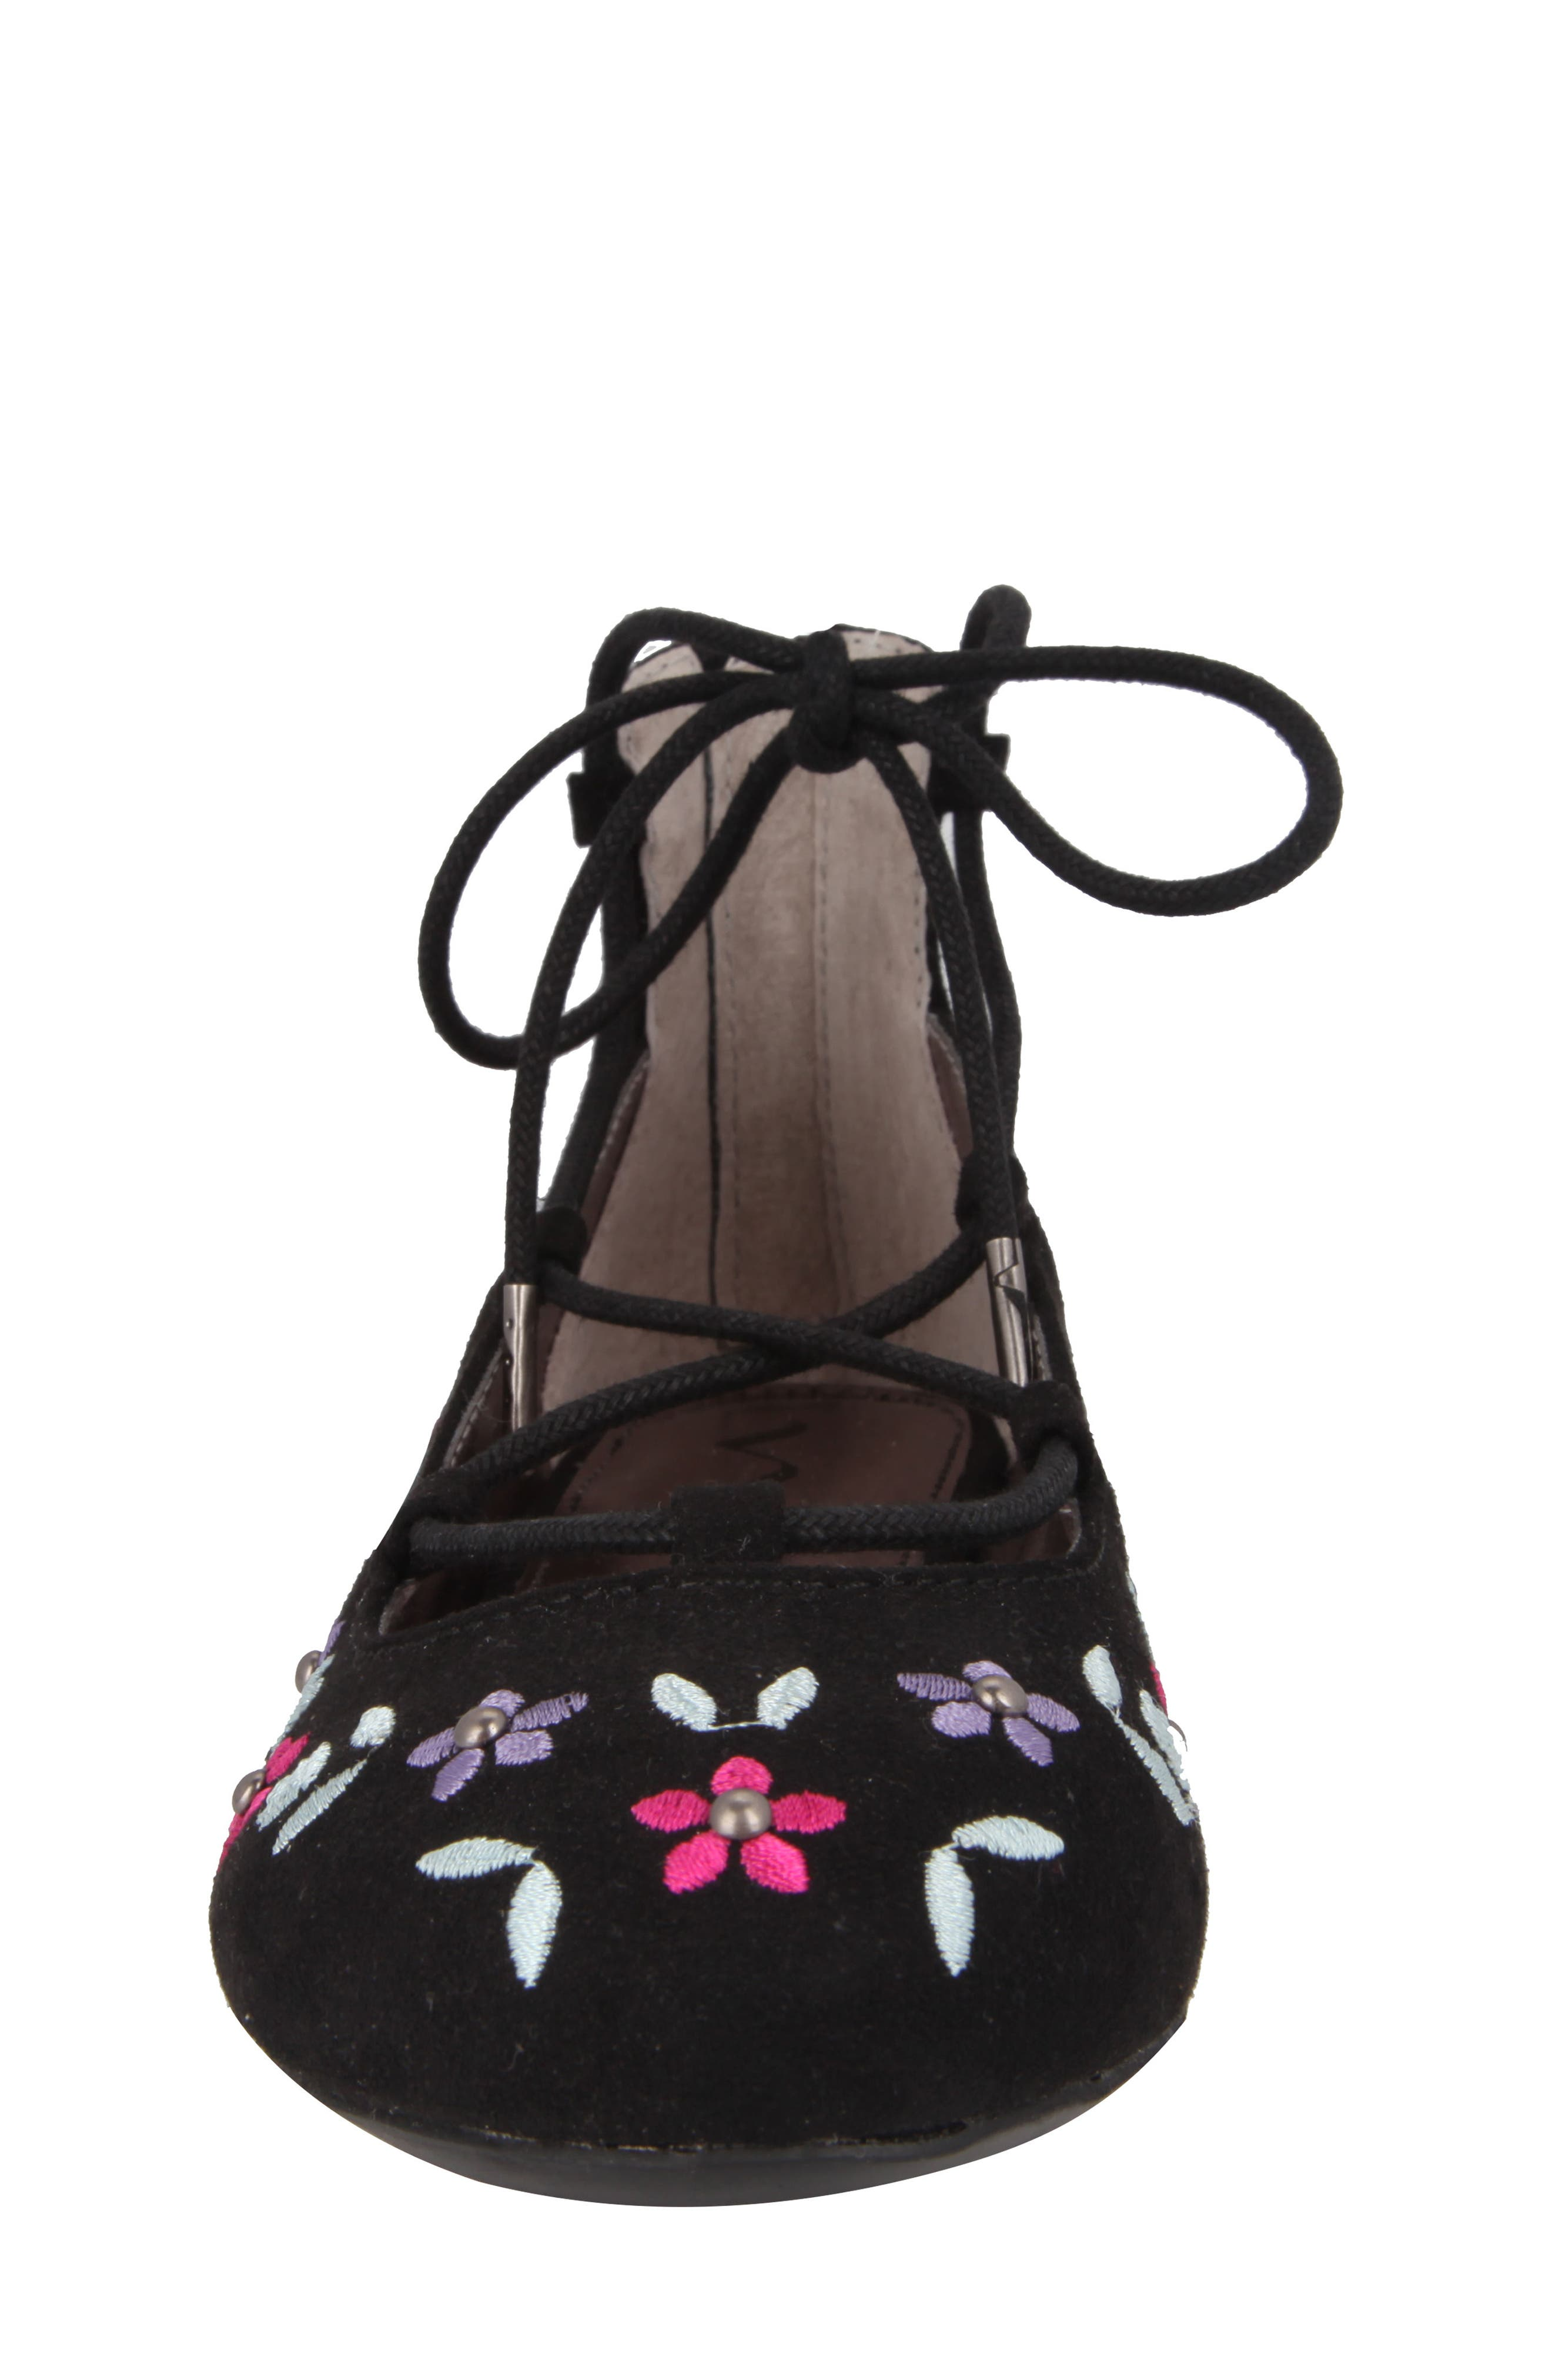 Nelly Embroidered Ghillie Flat,                             Alternate thumbnail 4, color,                             003